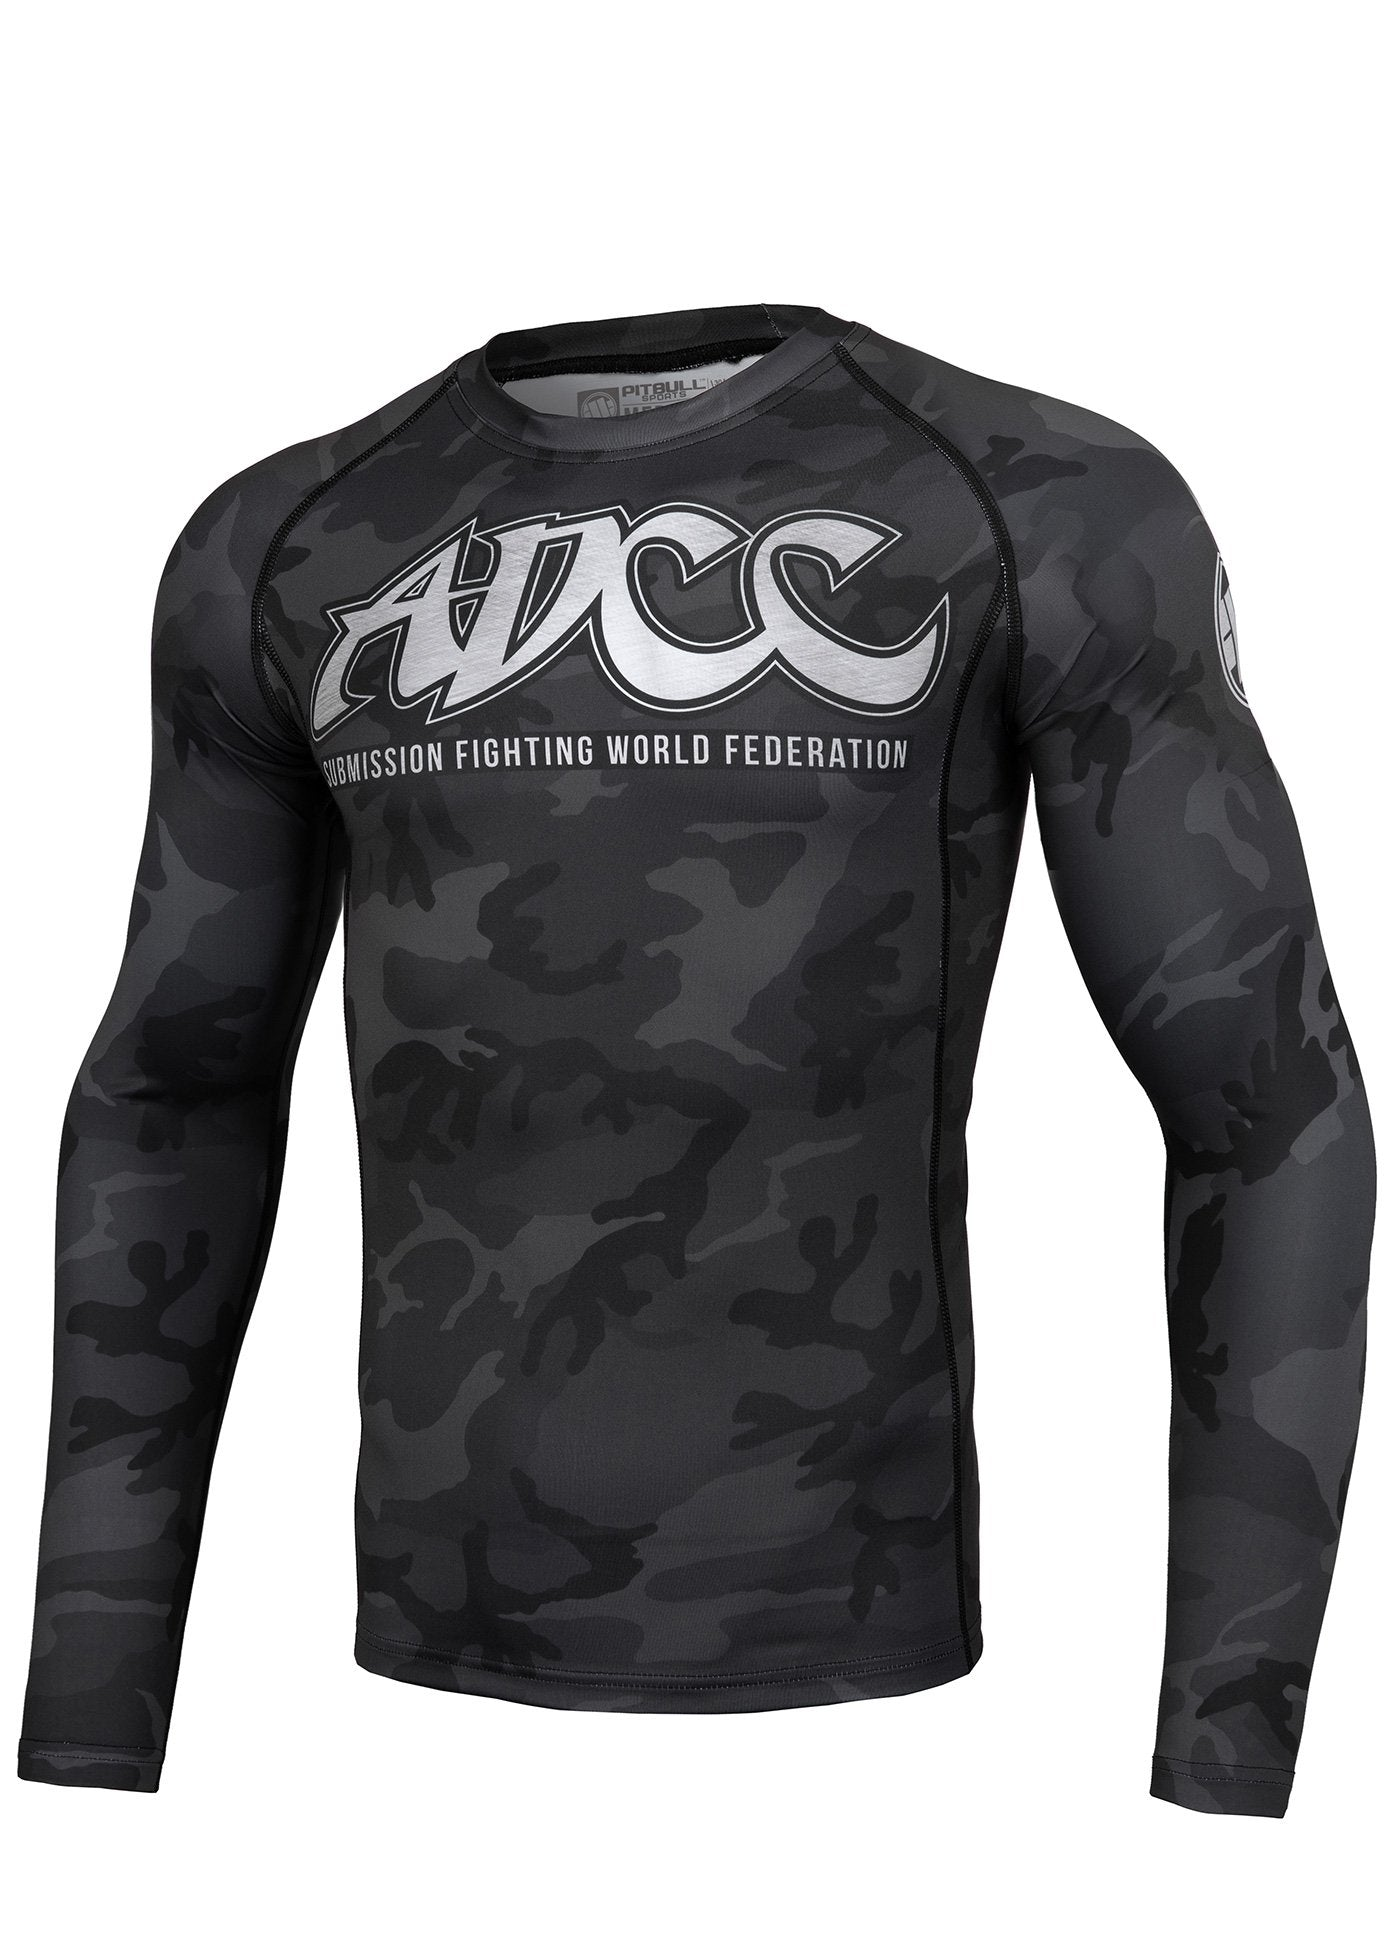 ADCC ALL BLACK Long Sleeve Rashguard - Pitbull West Coast U.S.A.